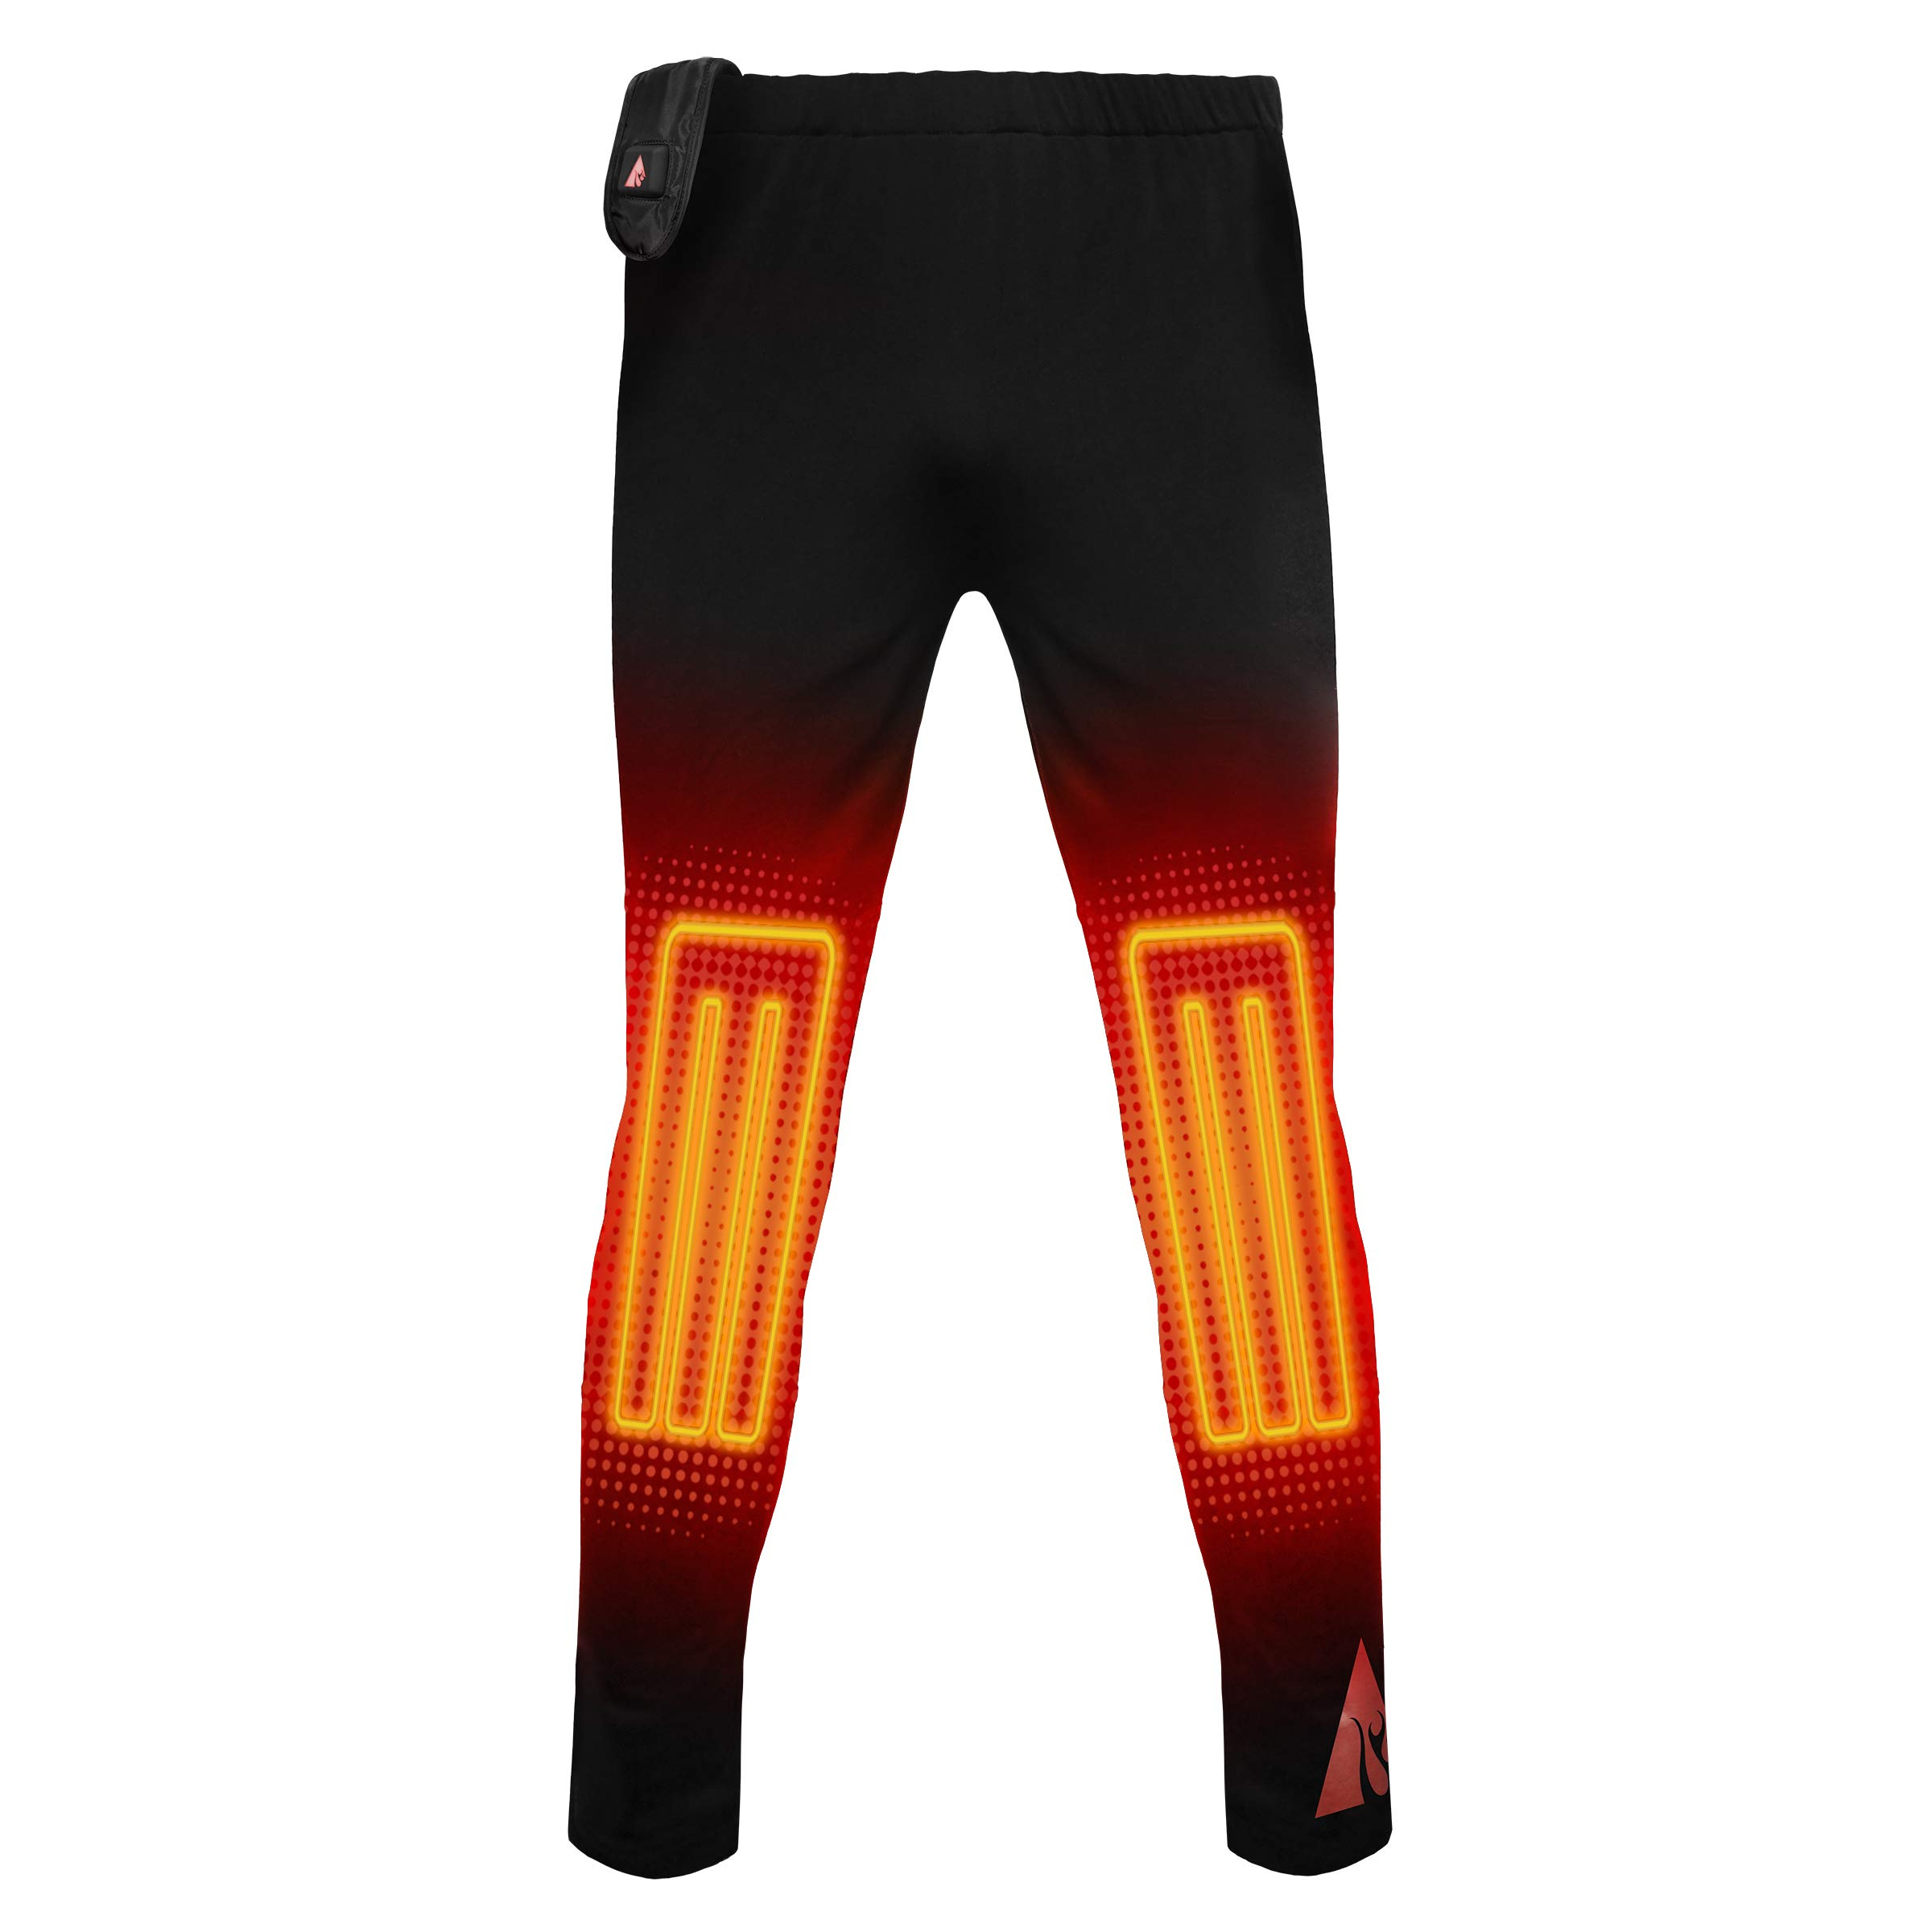 ActionHeat 5V Base Layer Battery Heated Pants for Men – Electric Heating Pants with Tri-Zone Heating Panels - Heated Trouser for Cold Weather Outdoor Camping, Hiking, Motorcycling